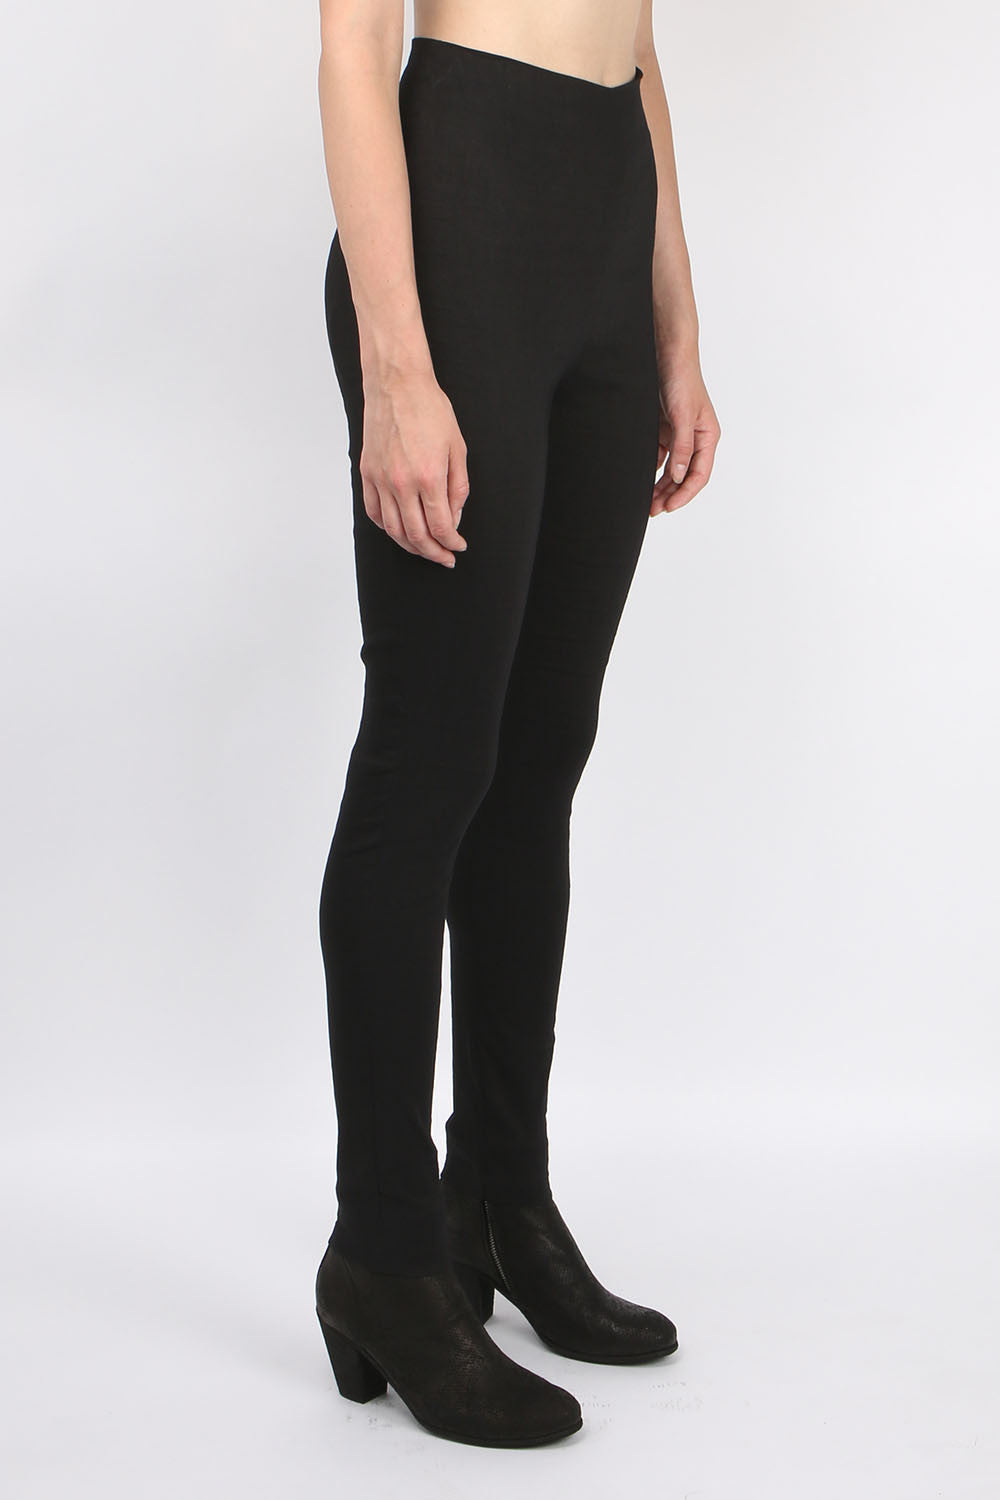 Cortana Manolo Pant Black